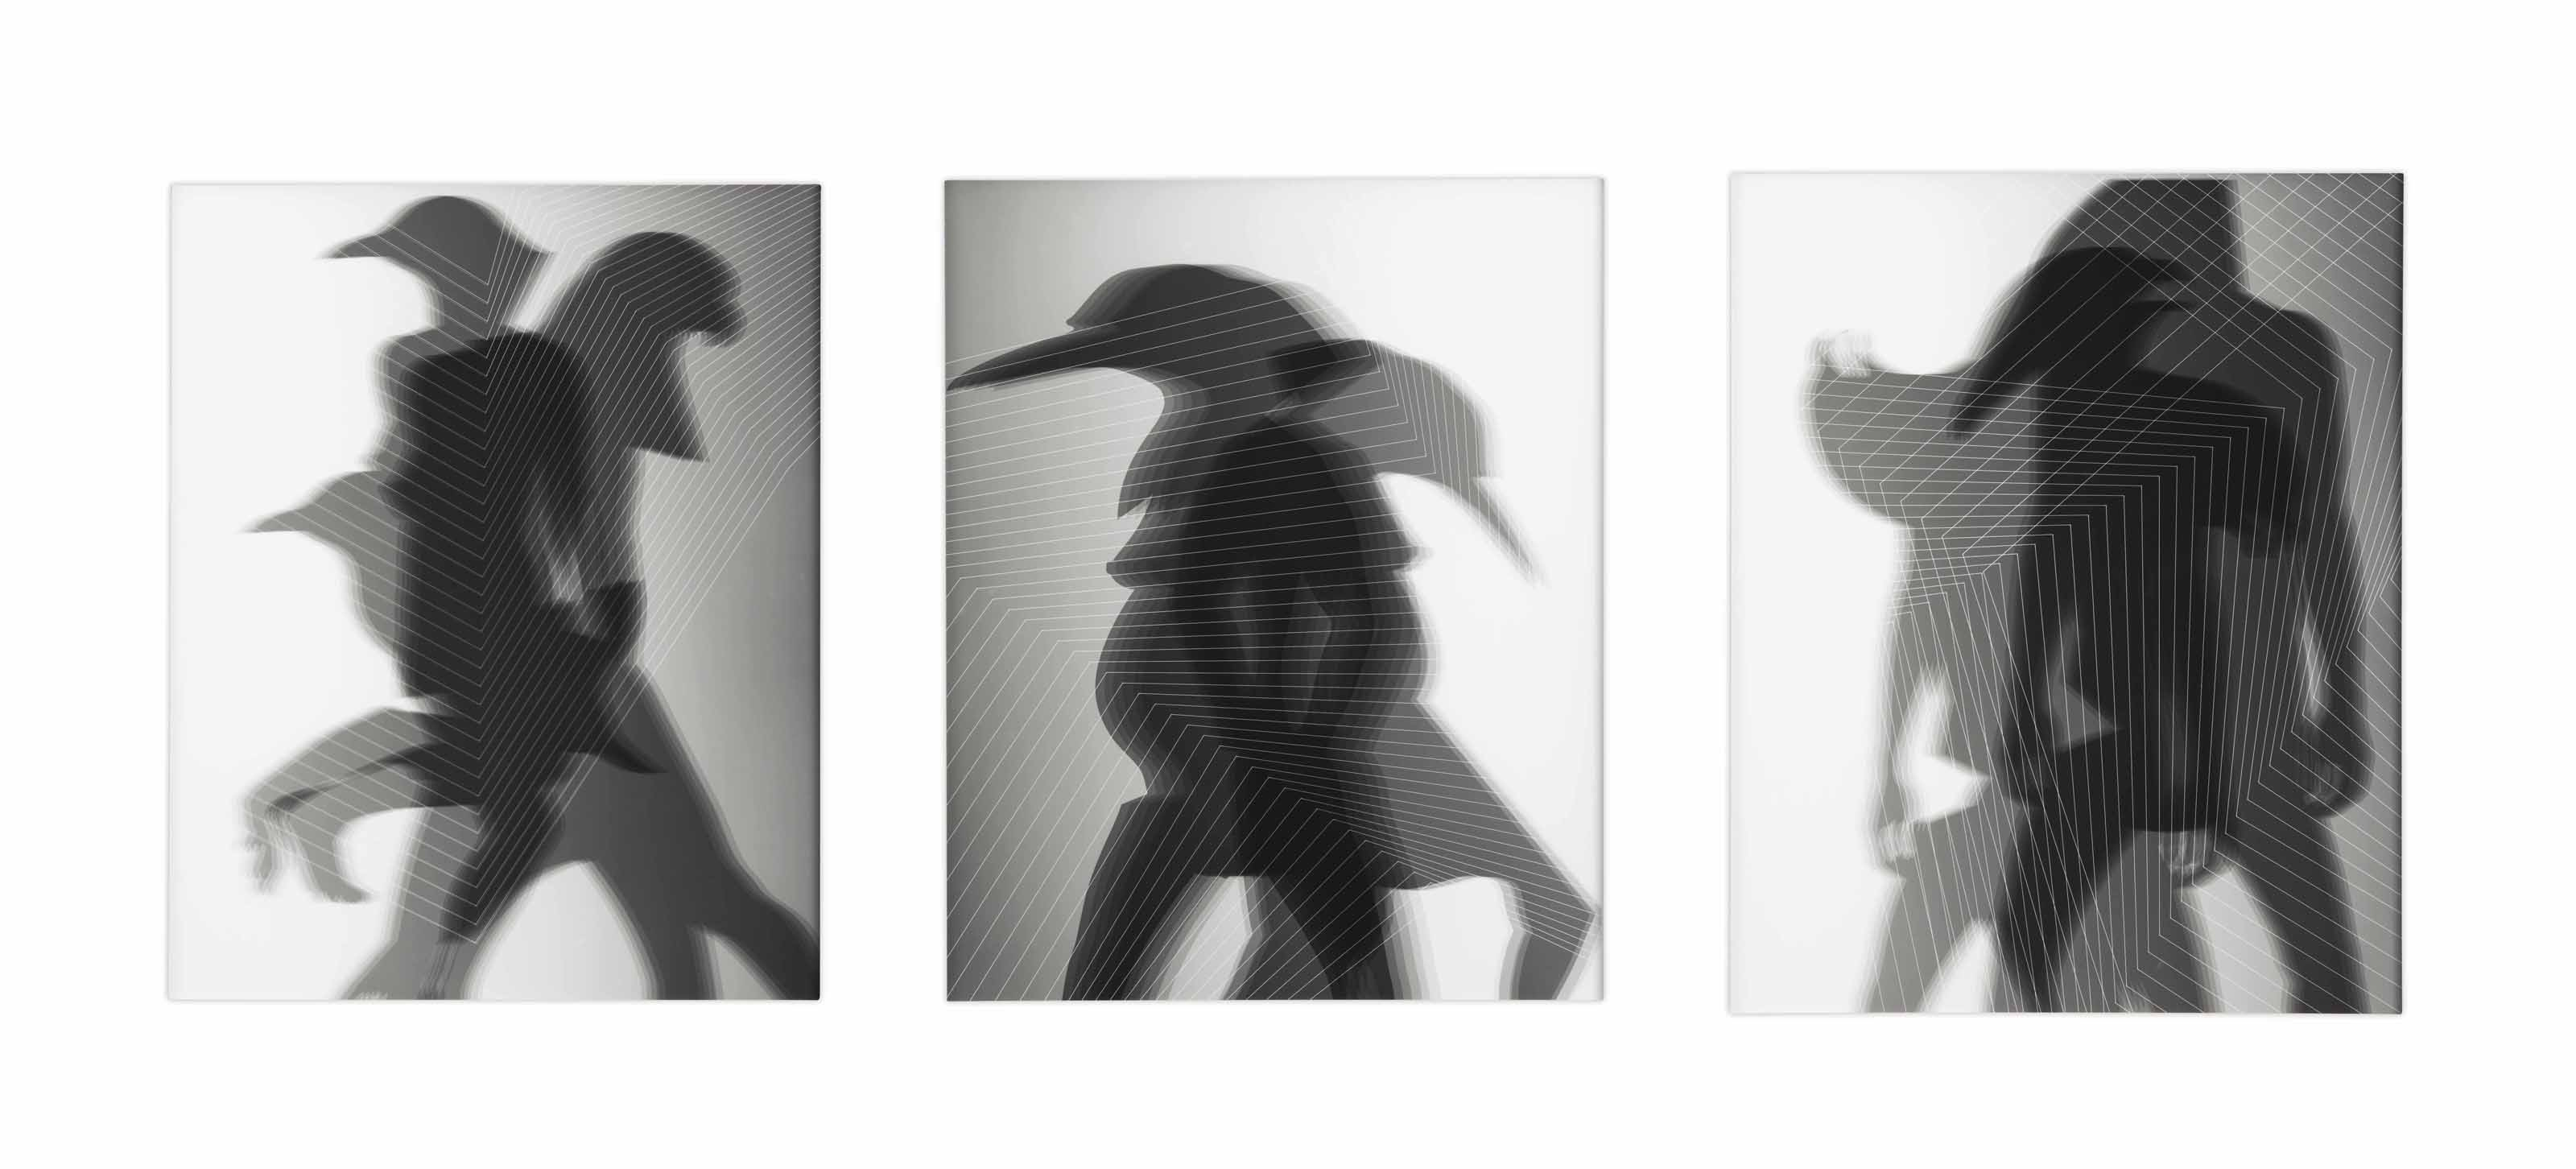 Skeleton Images (Compositions 3, 5, 13)